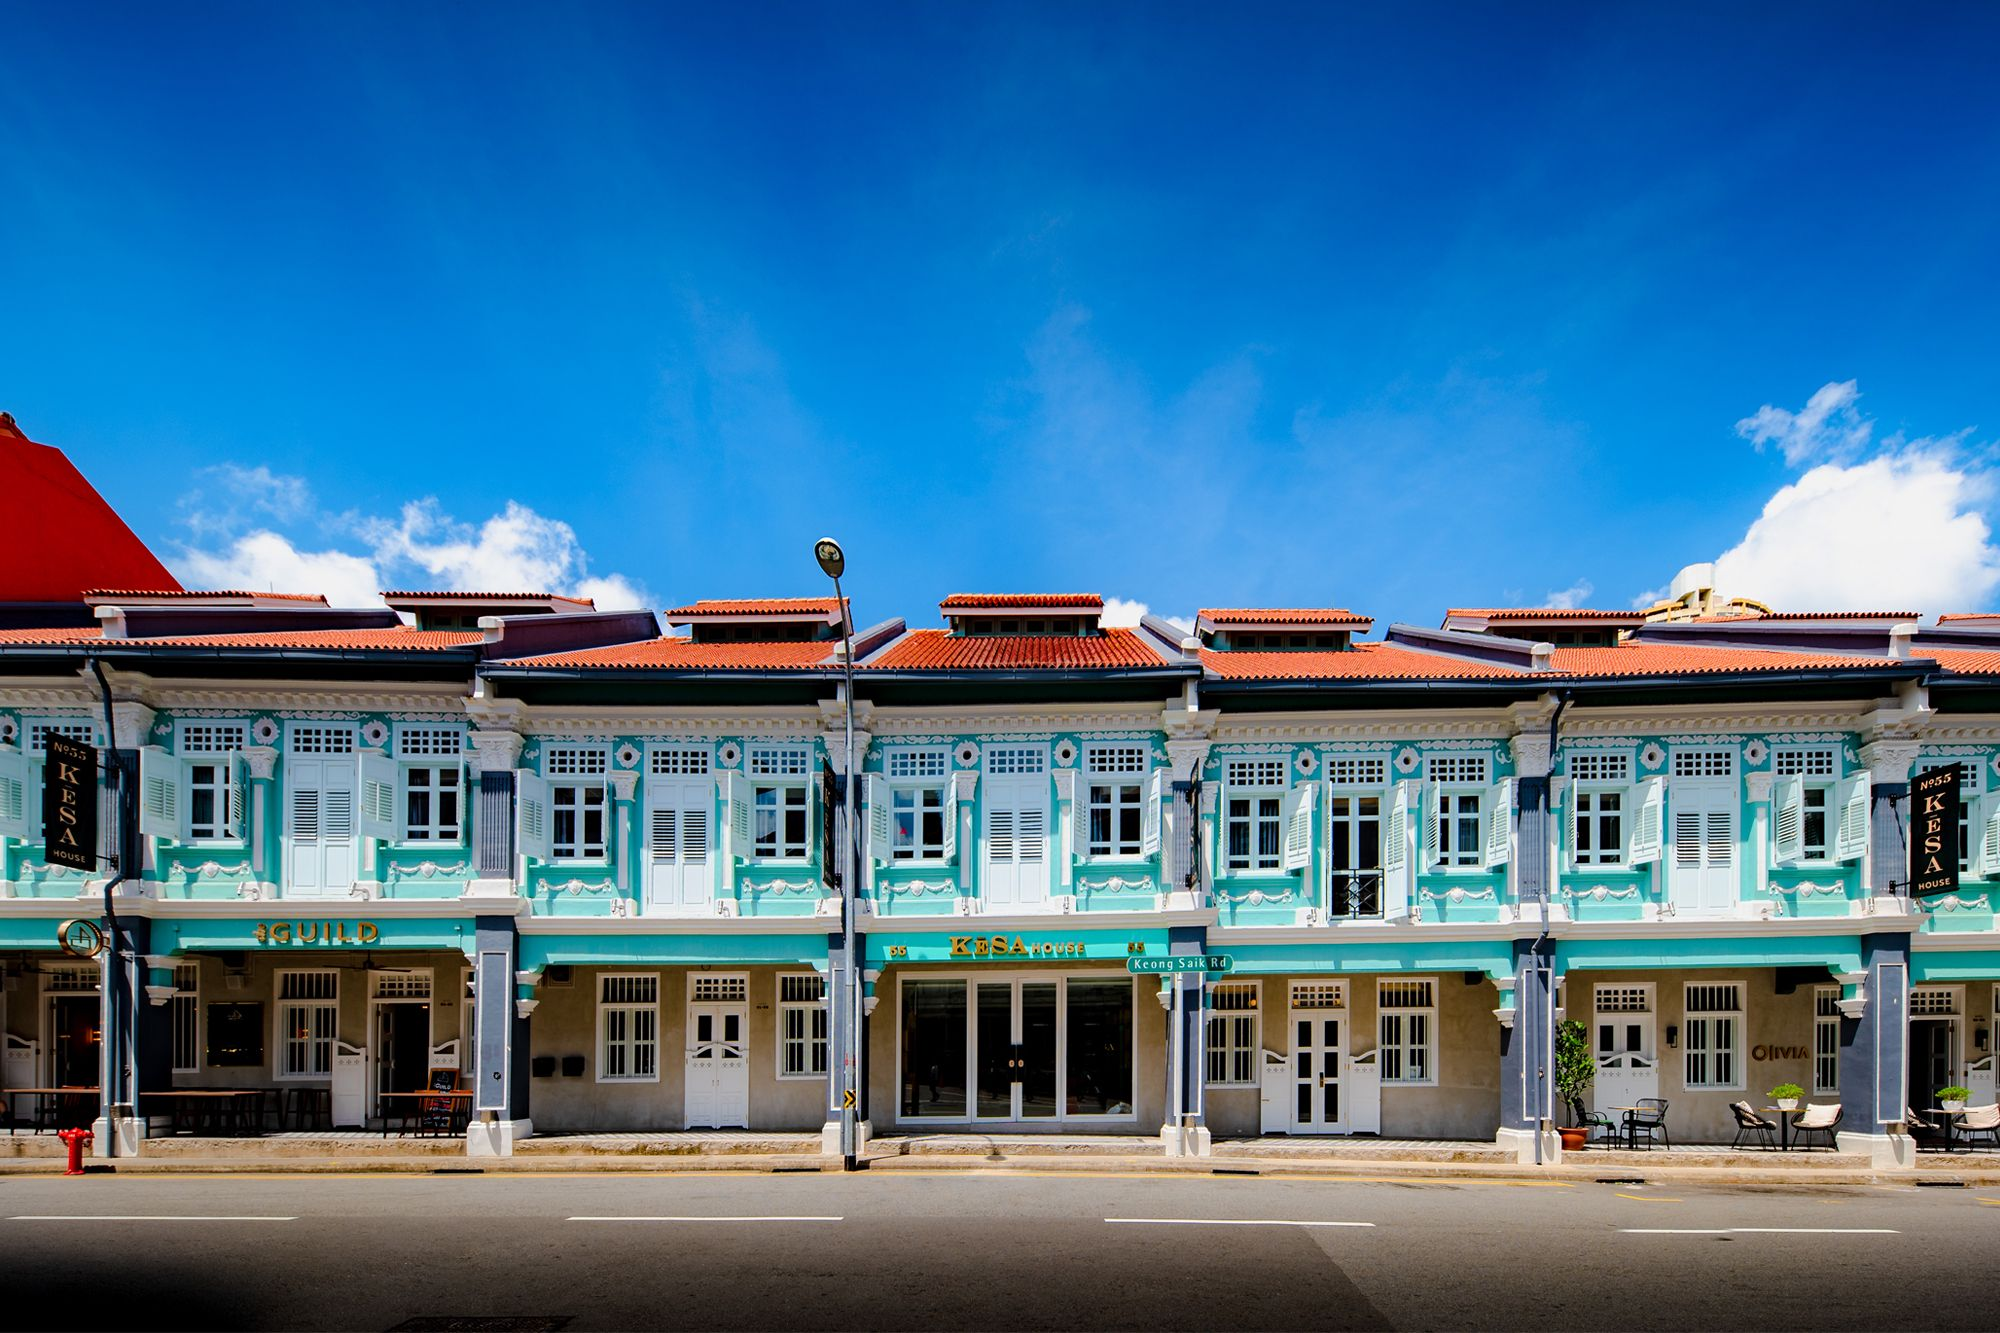 The distinctive blue exterior facade of KeSa House stands out amongst the row of shophouses